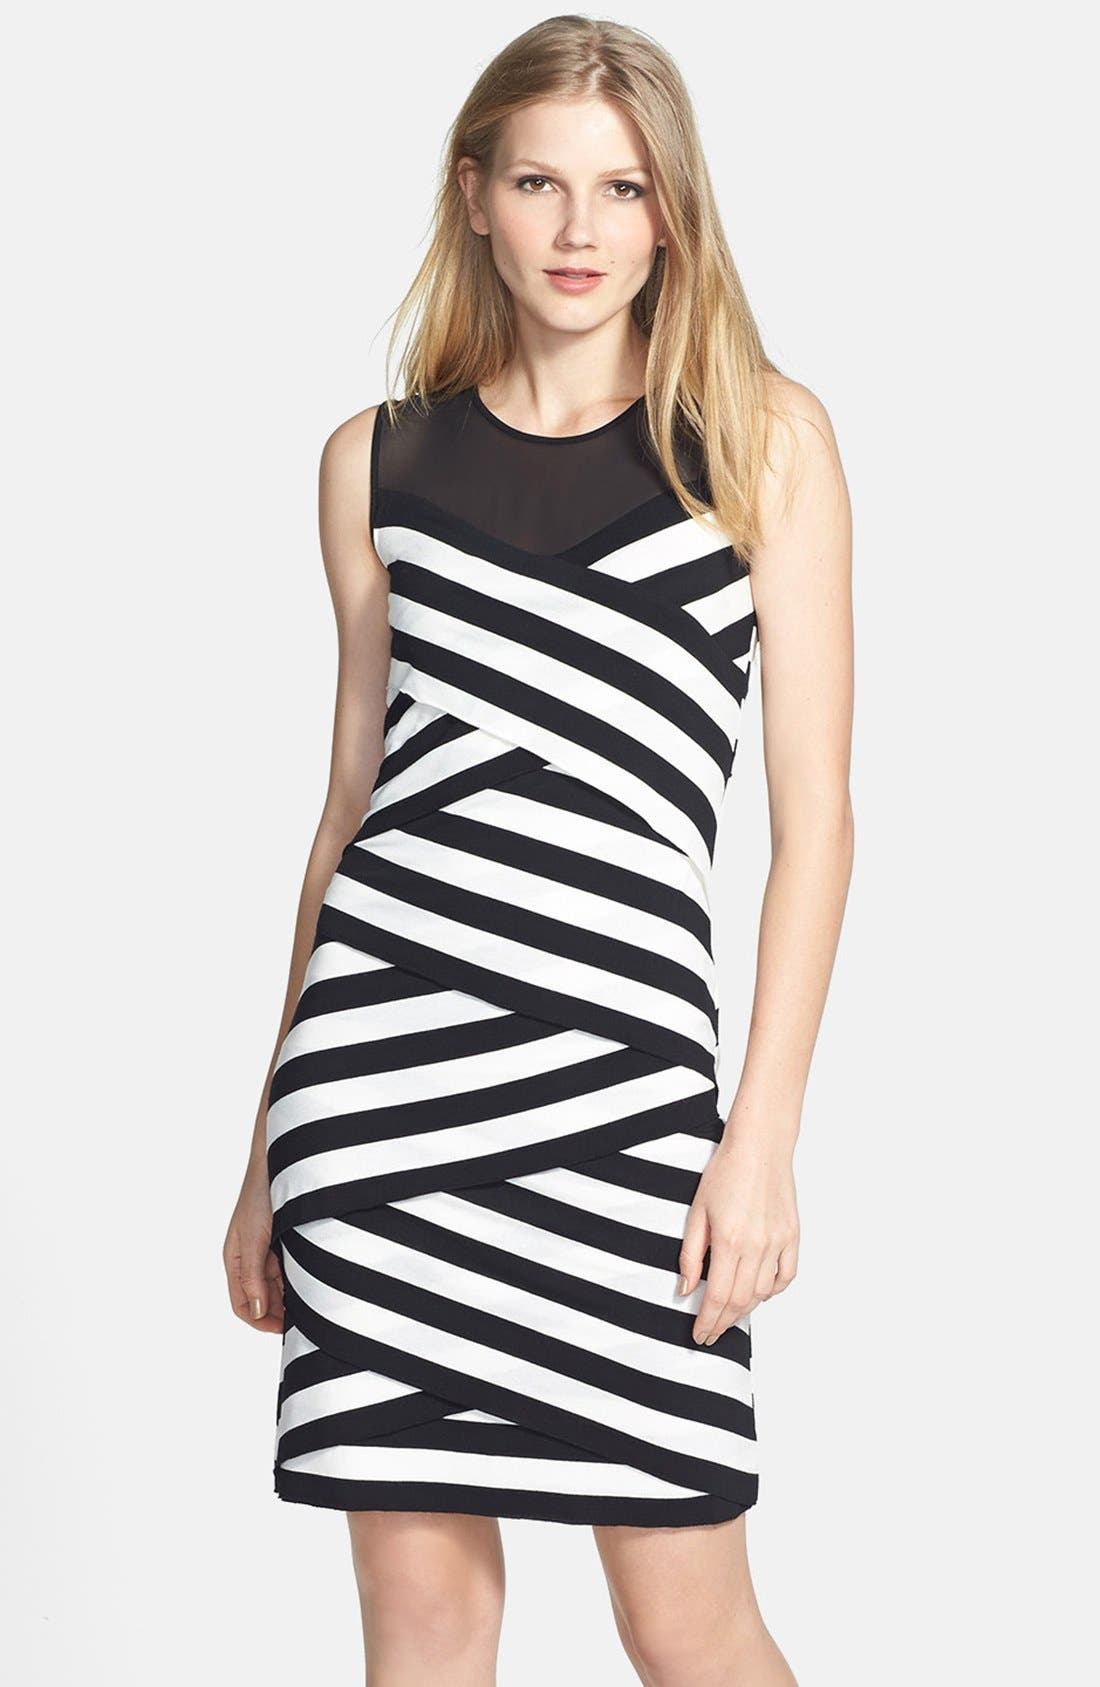 Main Image - Vince Camuto 'Café Stripe' Sheer Inset Zigzag Dress